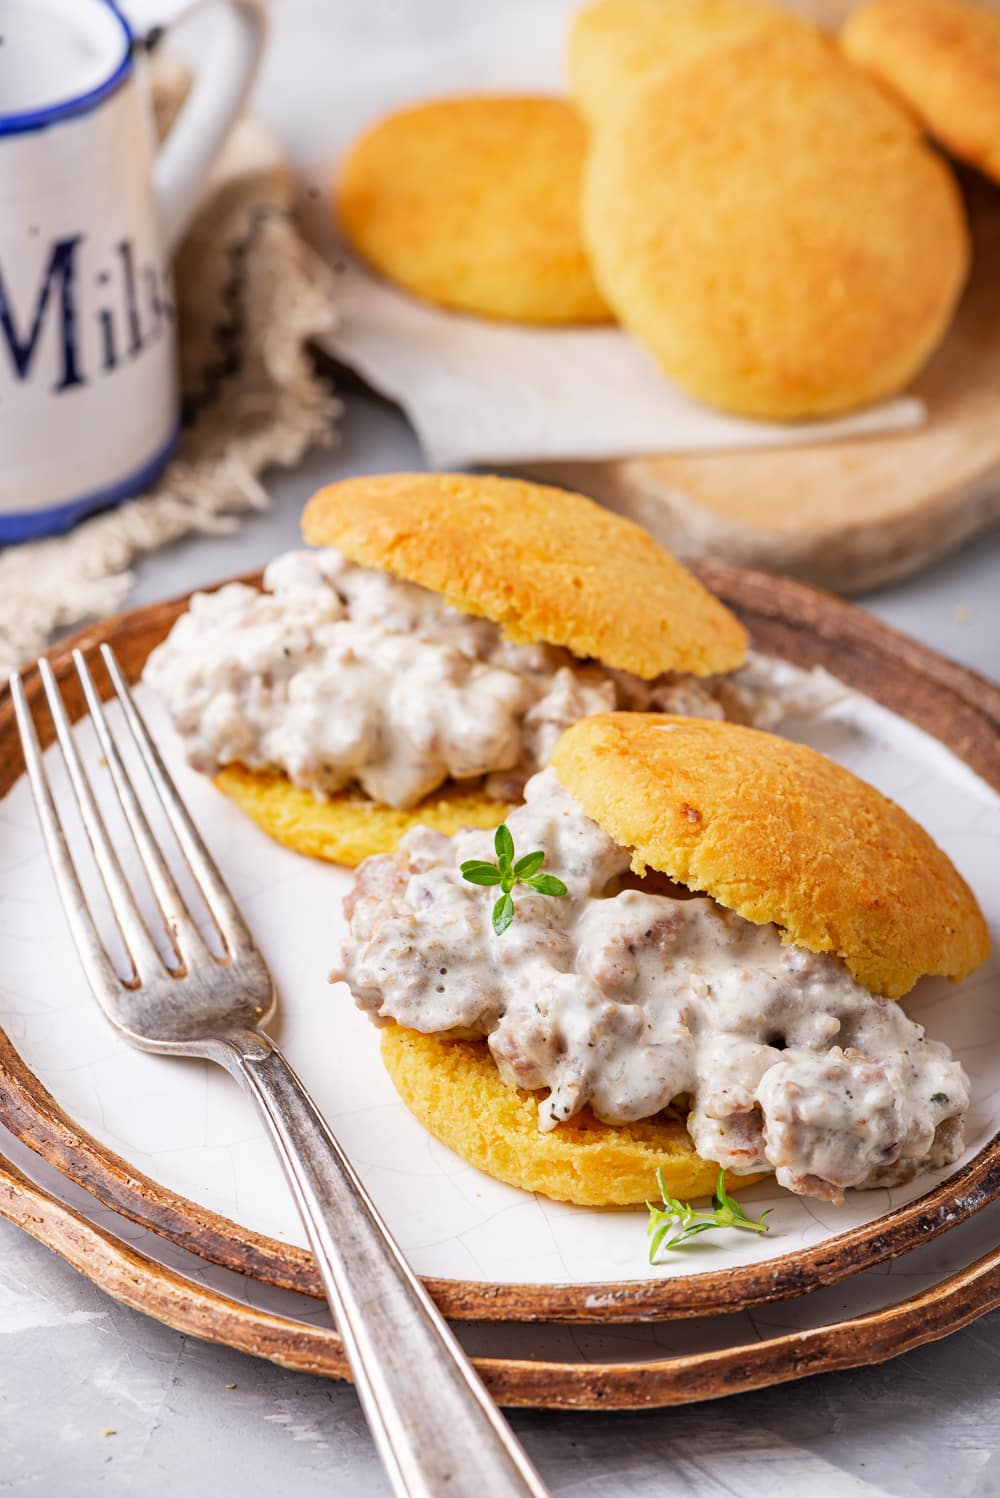 2 Biscuit and gravy sandwiches on a plate, with more biscuits behind them on a cutting board.